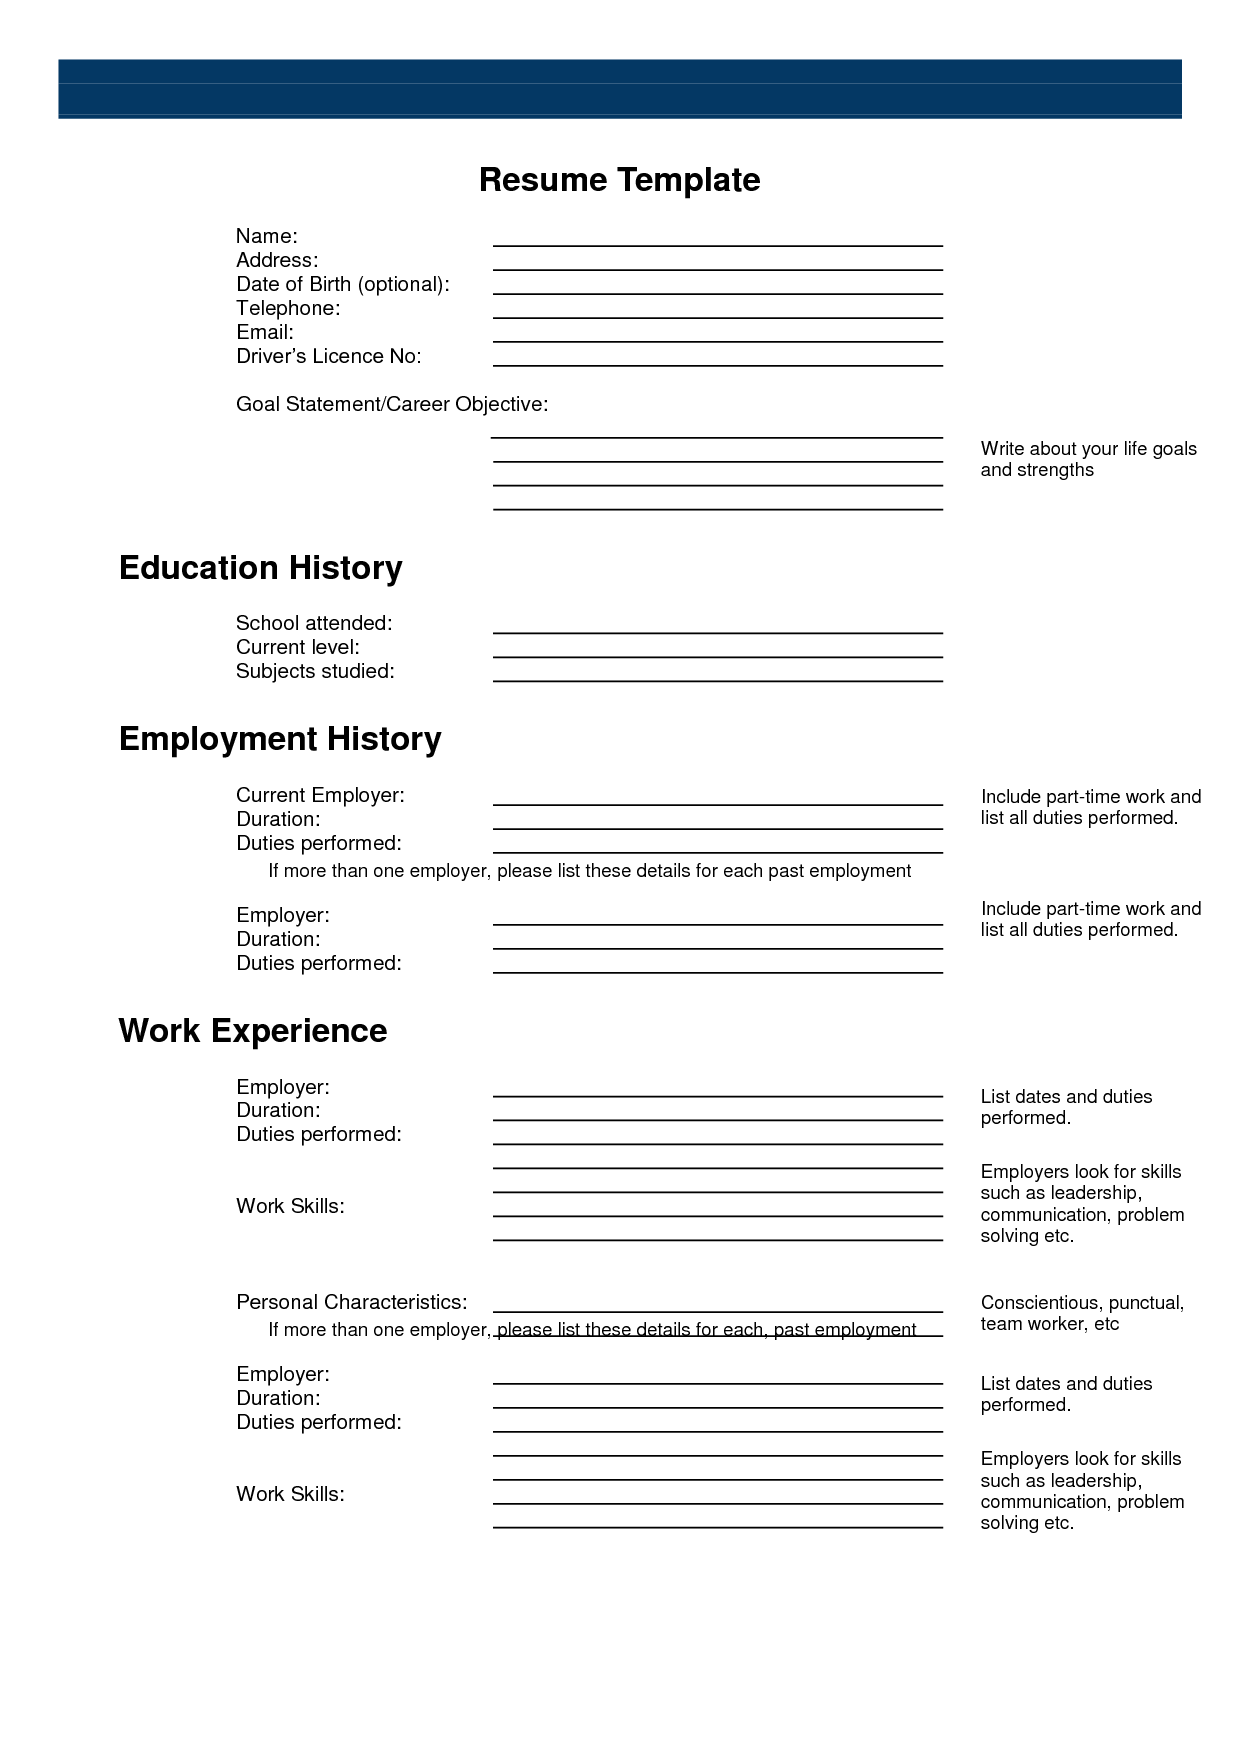 Free Printable Sample Resume Templates - http://www.resumecareer.info/